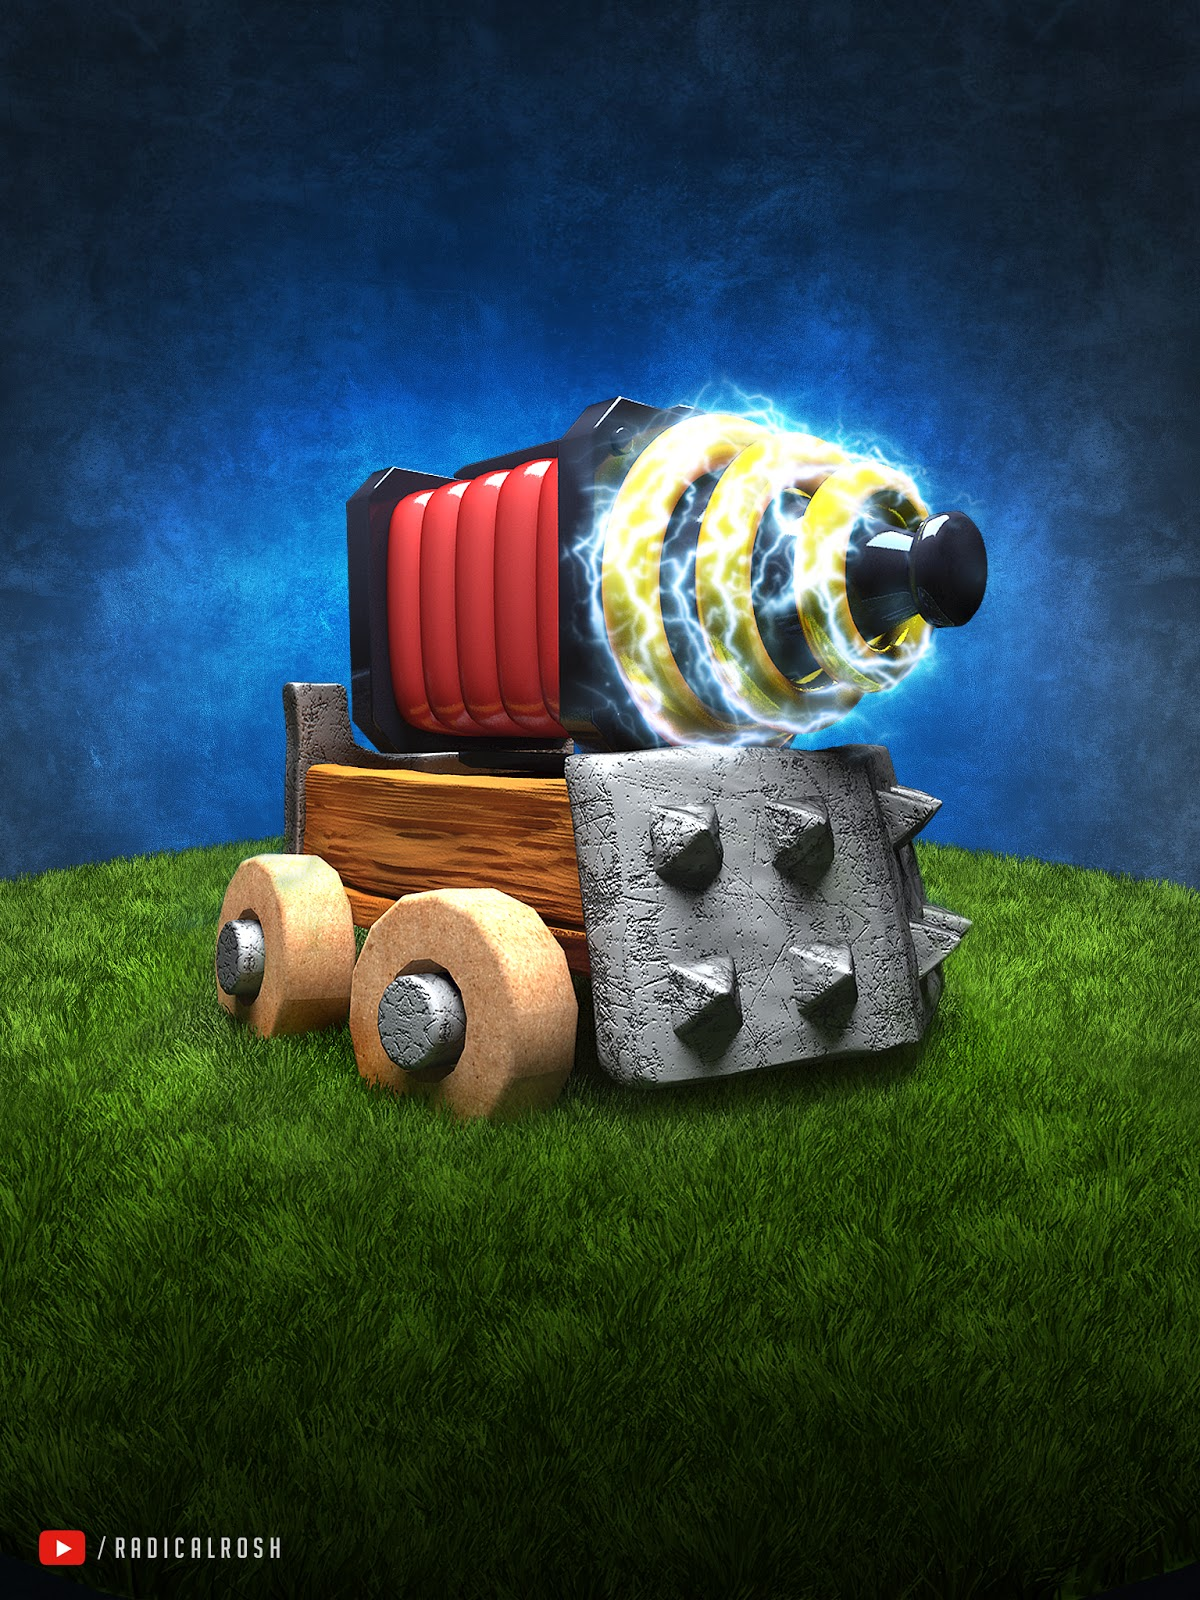 Hd Download Legendary Sparky Wallpaper For Android And Iphone